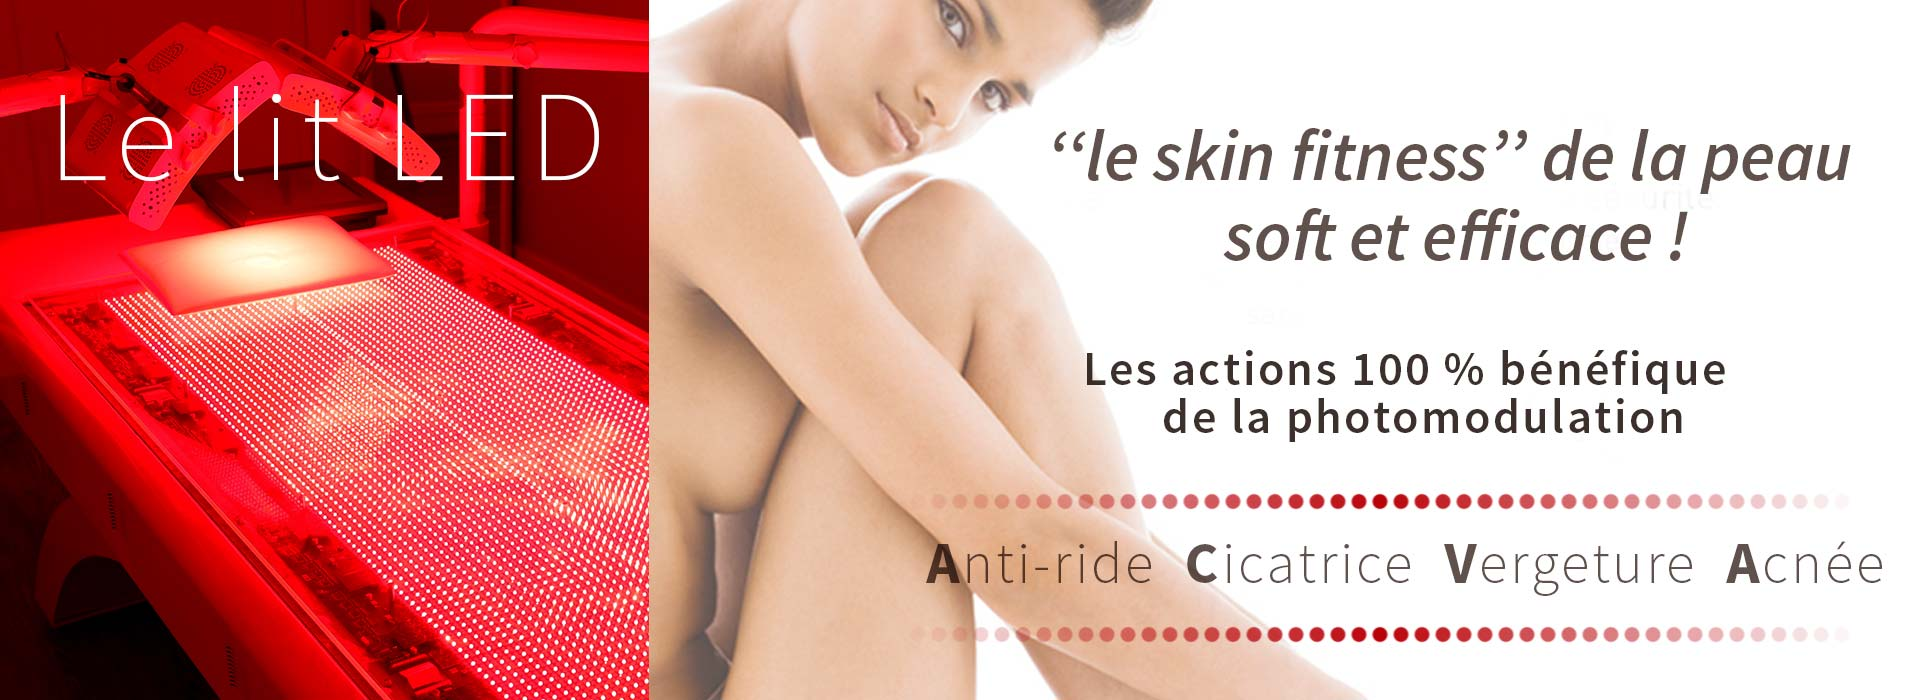 lit-led-anti-ride-cicatrice-vergeture-acnee-skin-efficience